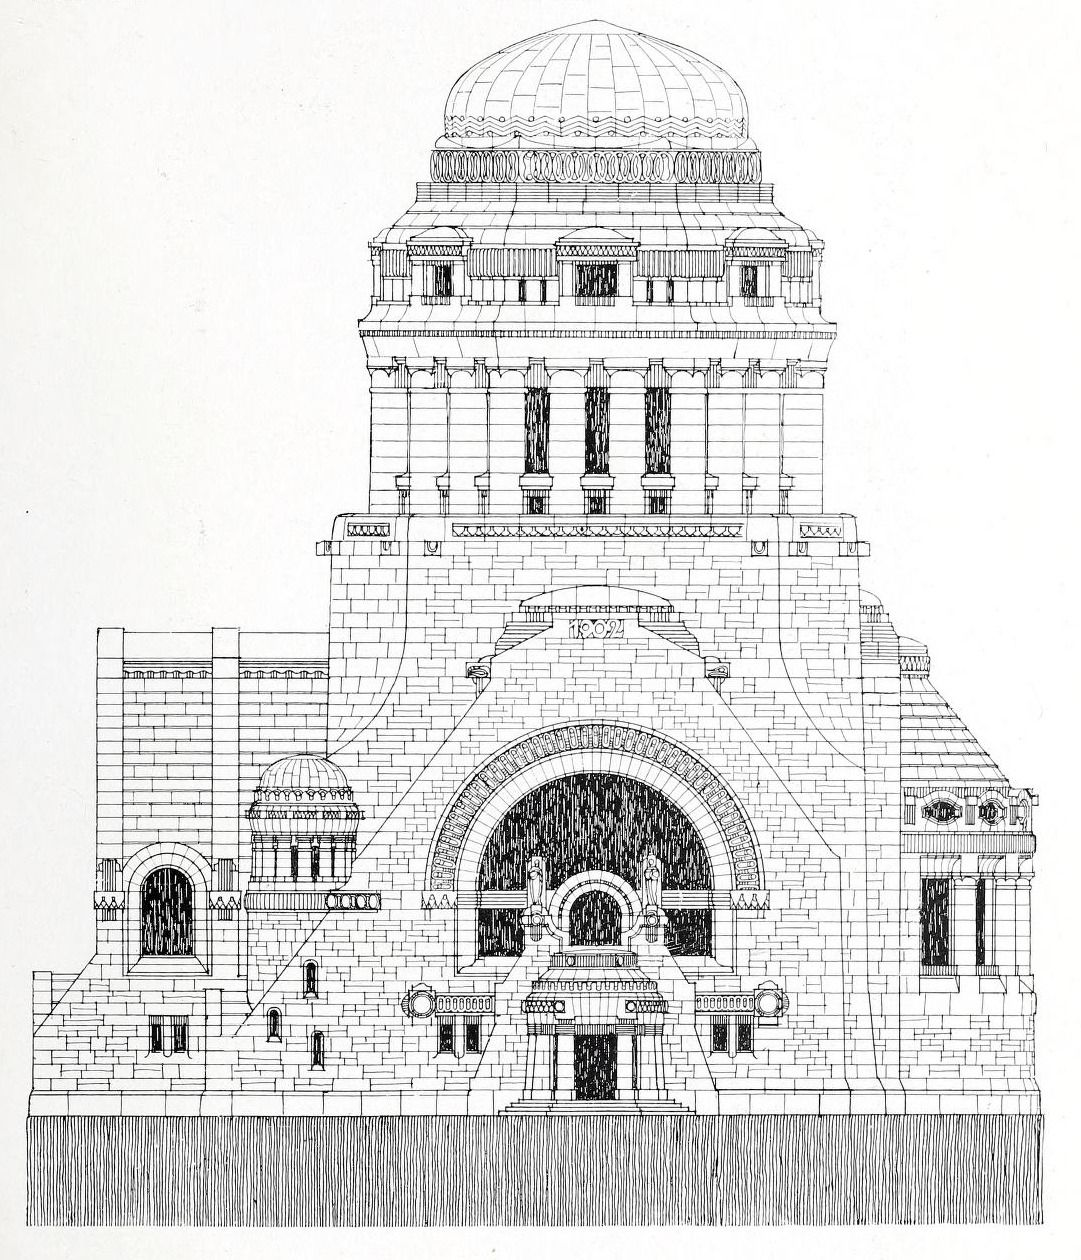 Architecture Design Sketch For A Monumental Structure